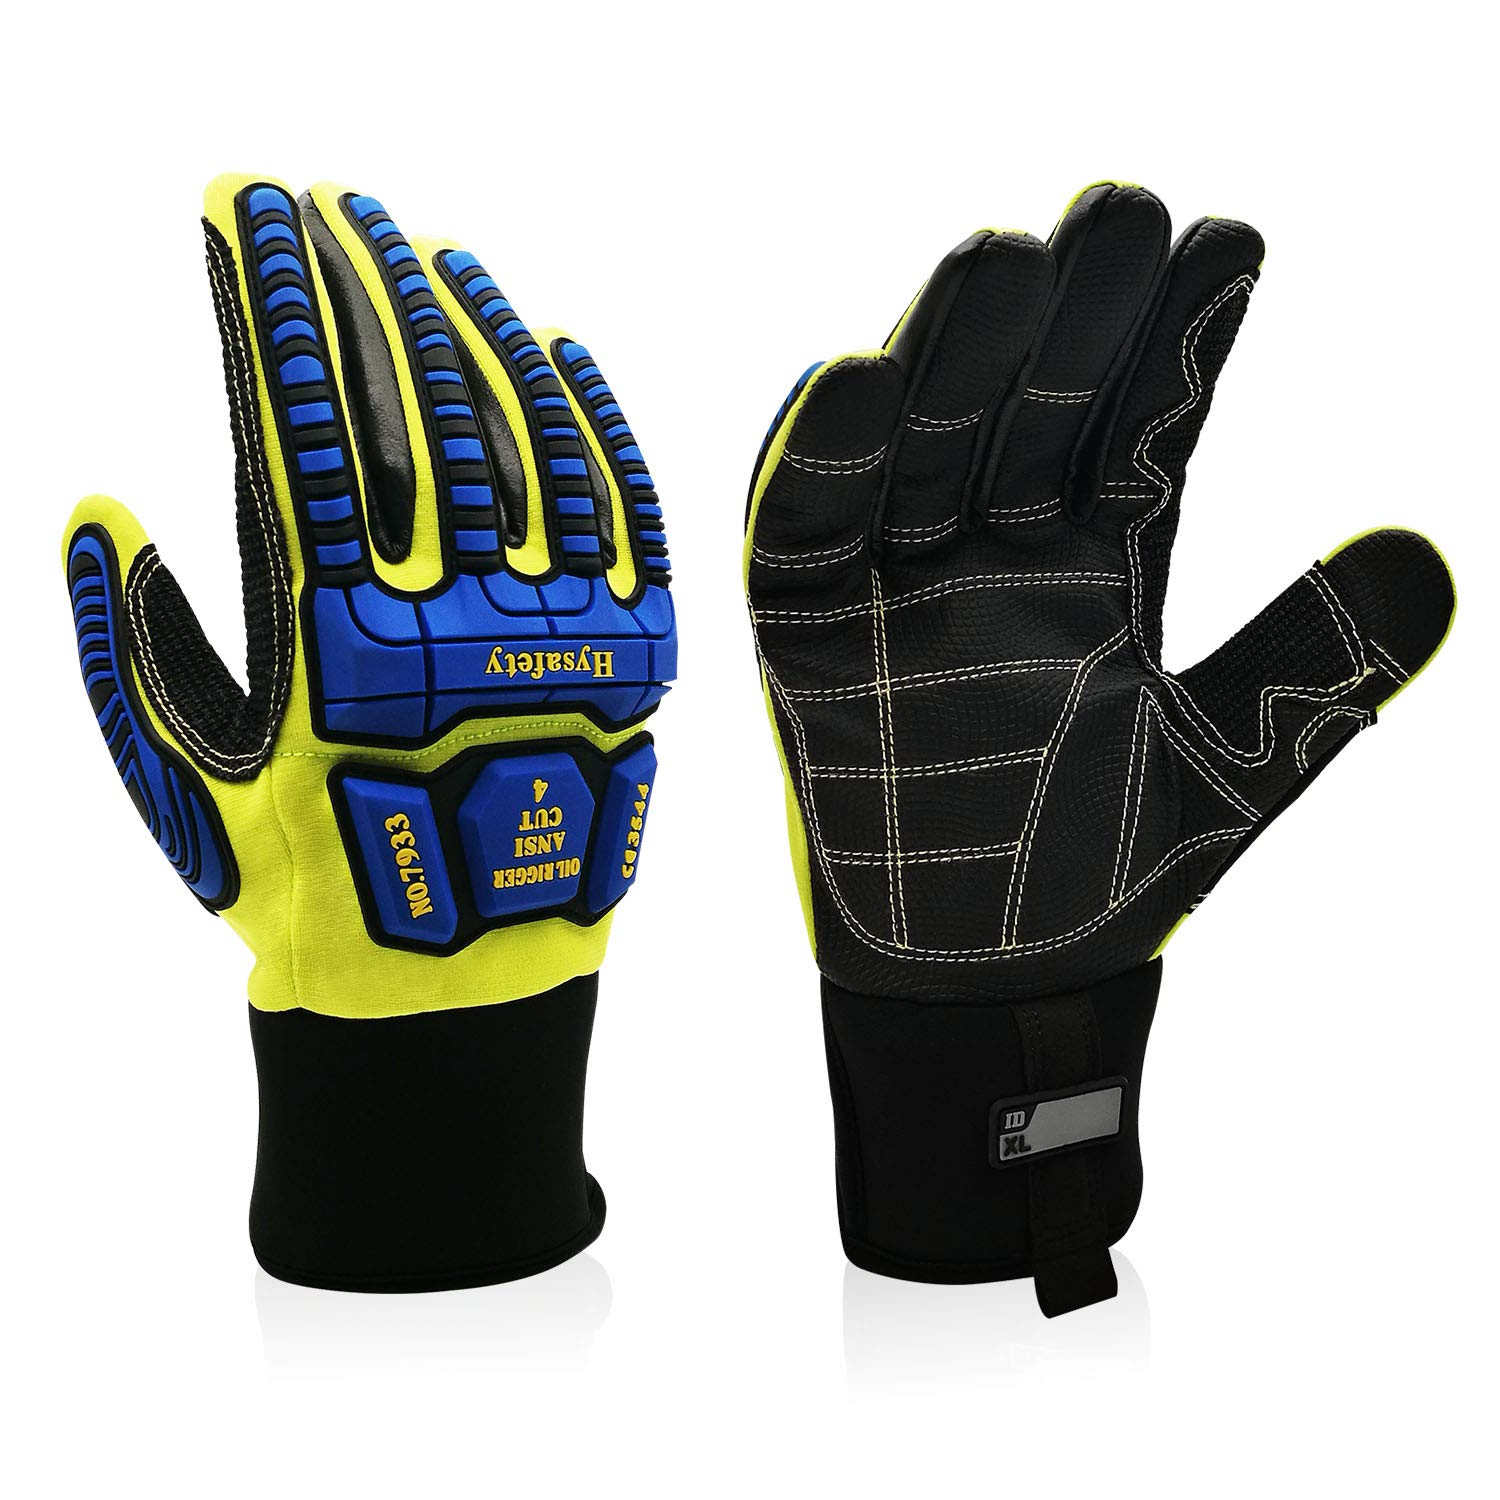 Intra-FIT Impact Oil & Gas Resistant Glove Oil and Gas/Oilfield Safety Gloves TPR knuckle and finger protection EN1621-1